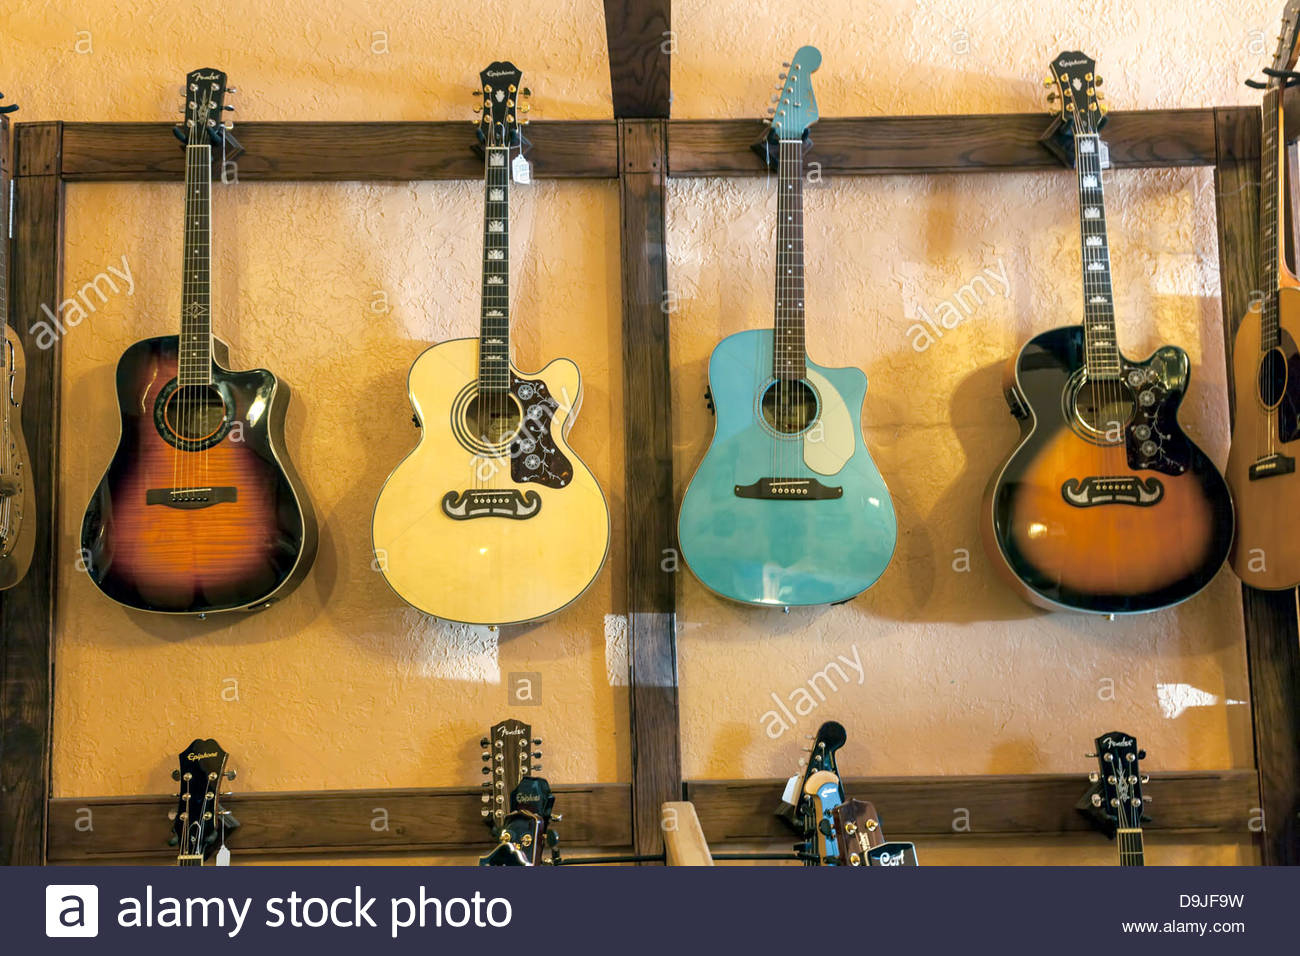 Accrocher Sa Guitare Au Mur Beau Galerie Acoustic Guitars S & Acoustic Guitars Alamy